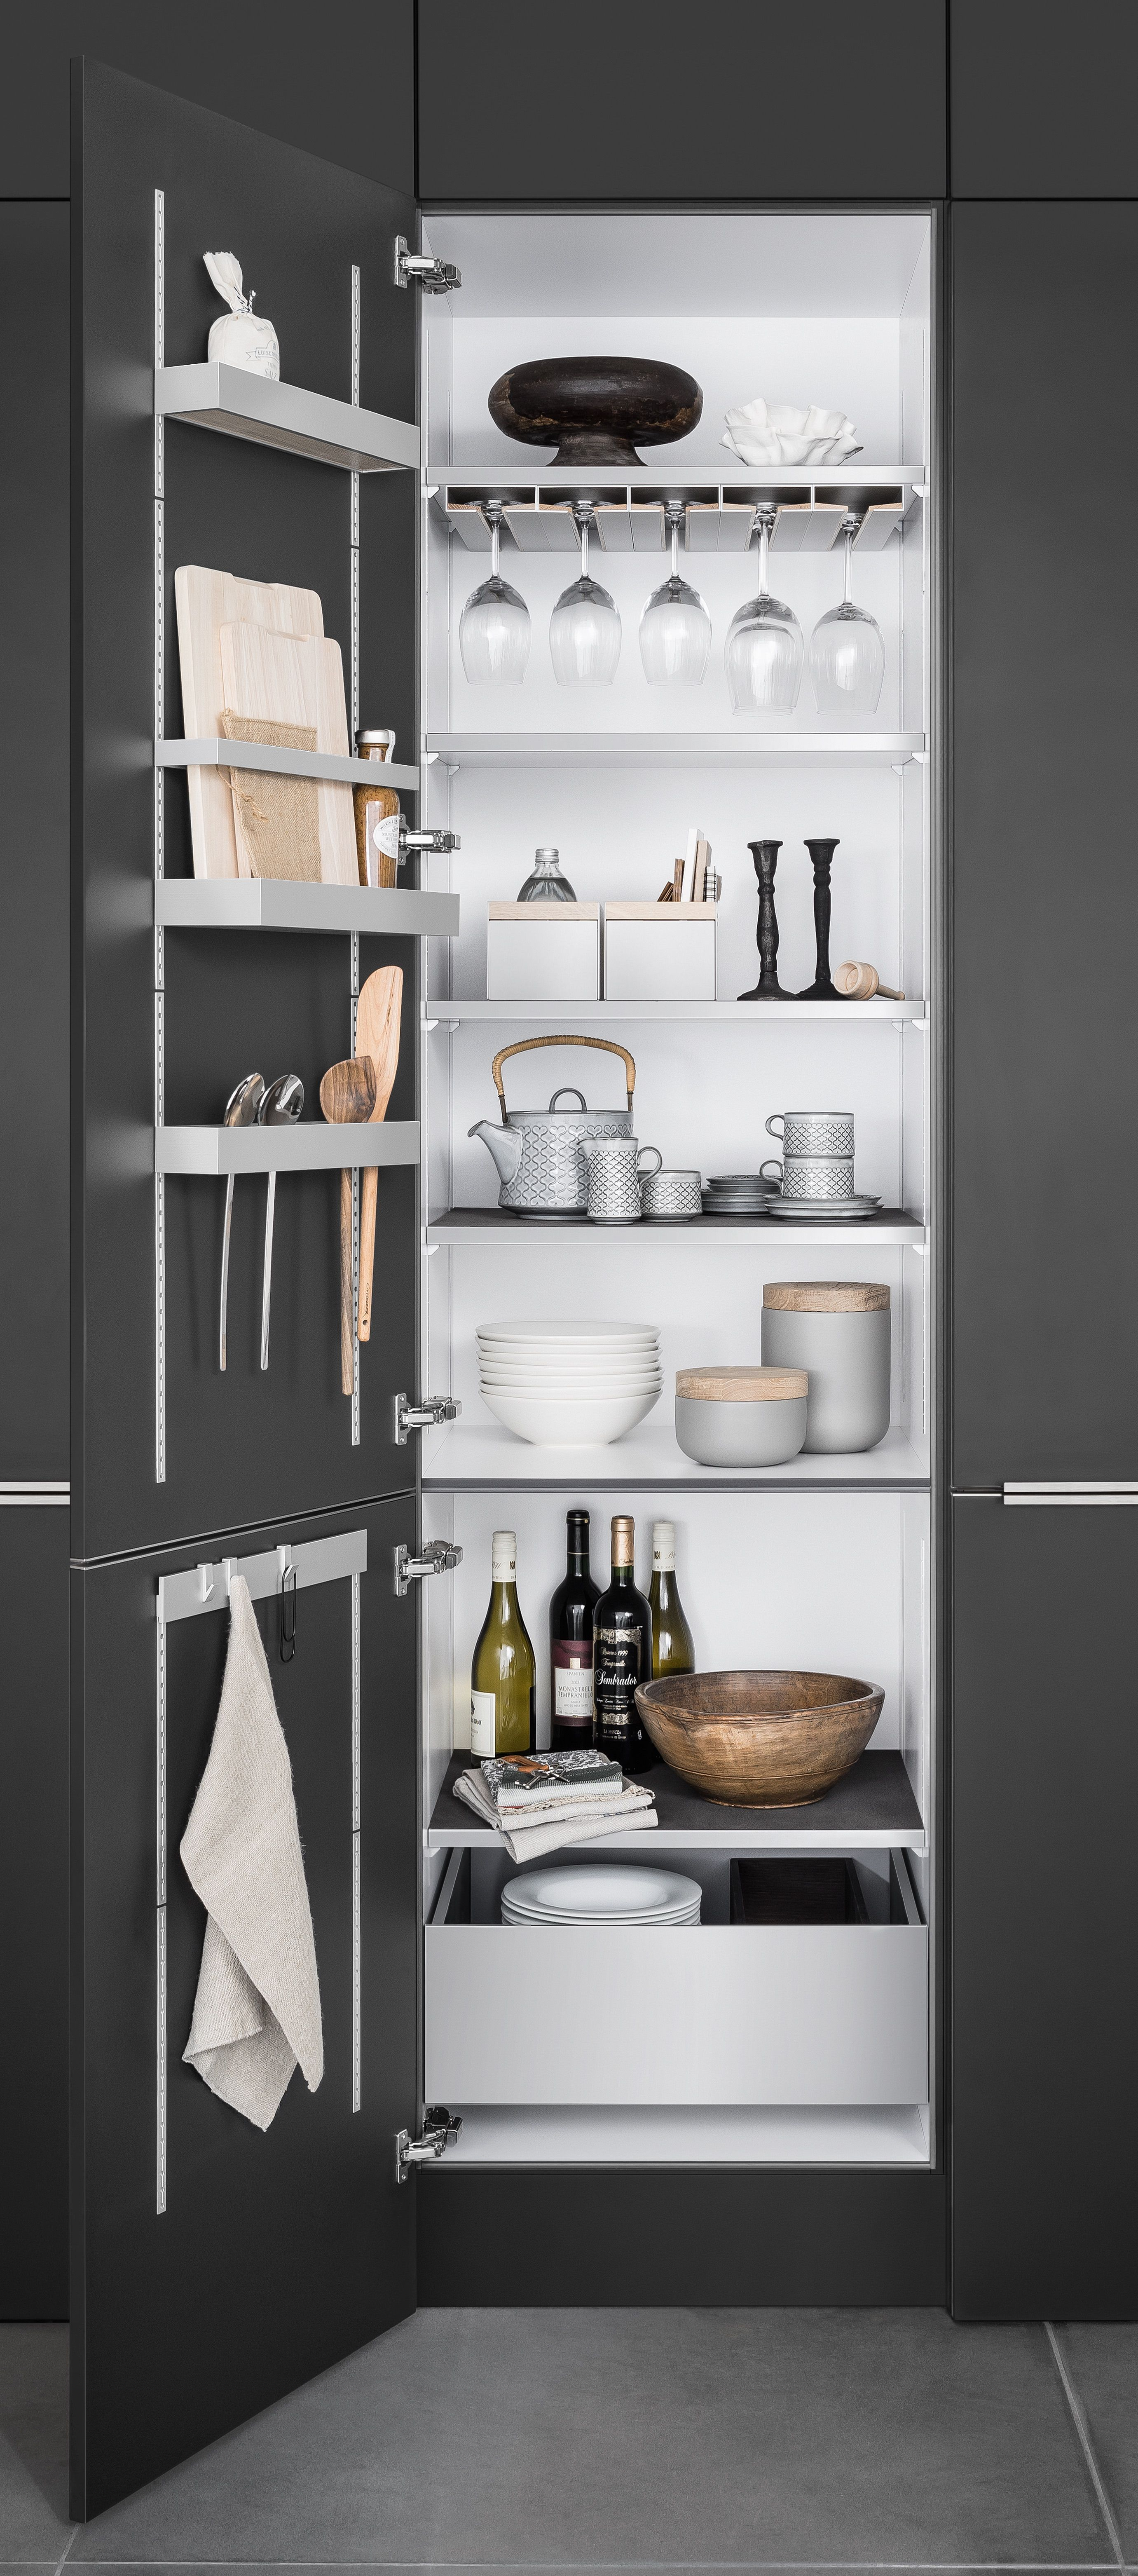 storage solutions and under shelf cabinet solid shelves pantry ideas organiser organizers wire bins drawers dividers wood cupboard with racks corner drawer white kitchen for rattan